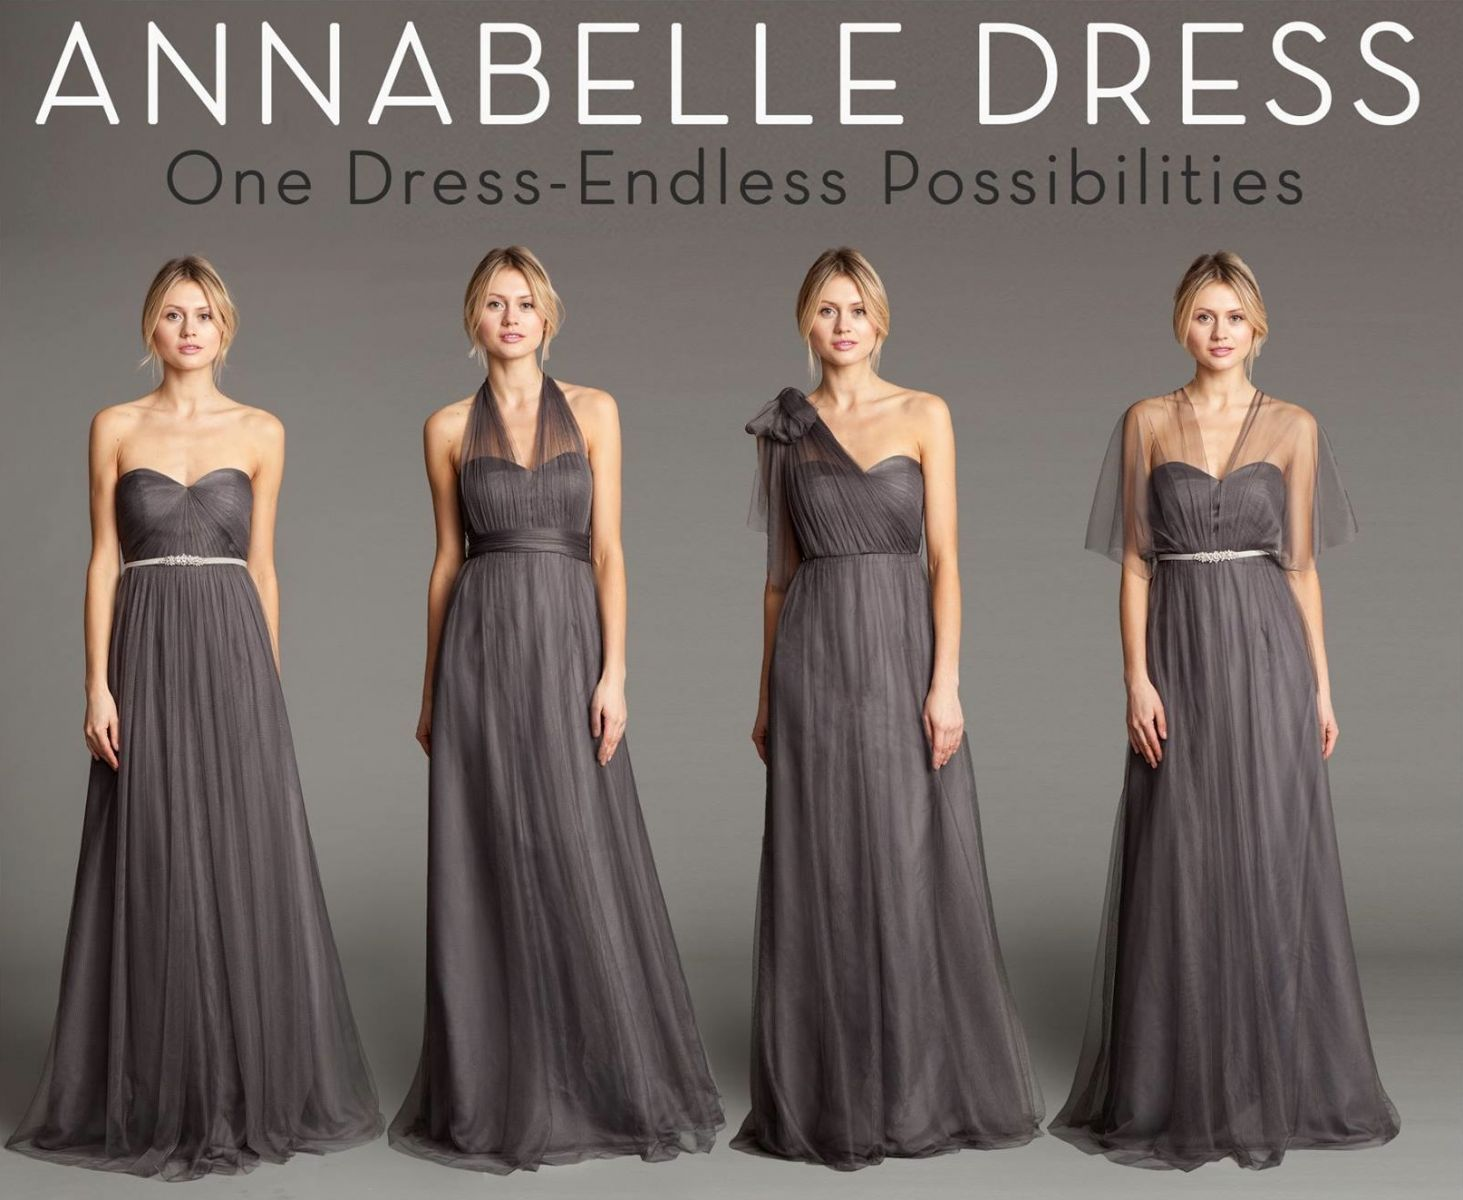 Convertible tulle dress google search dresses pinterest convertible tulle dress google search ombrellifo Choice Image